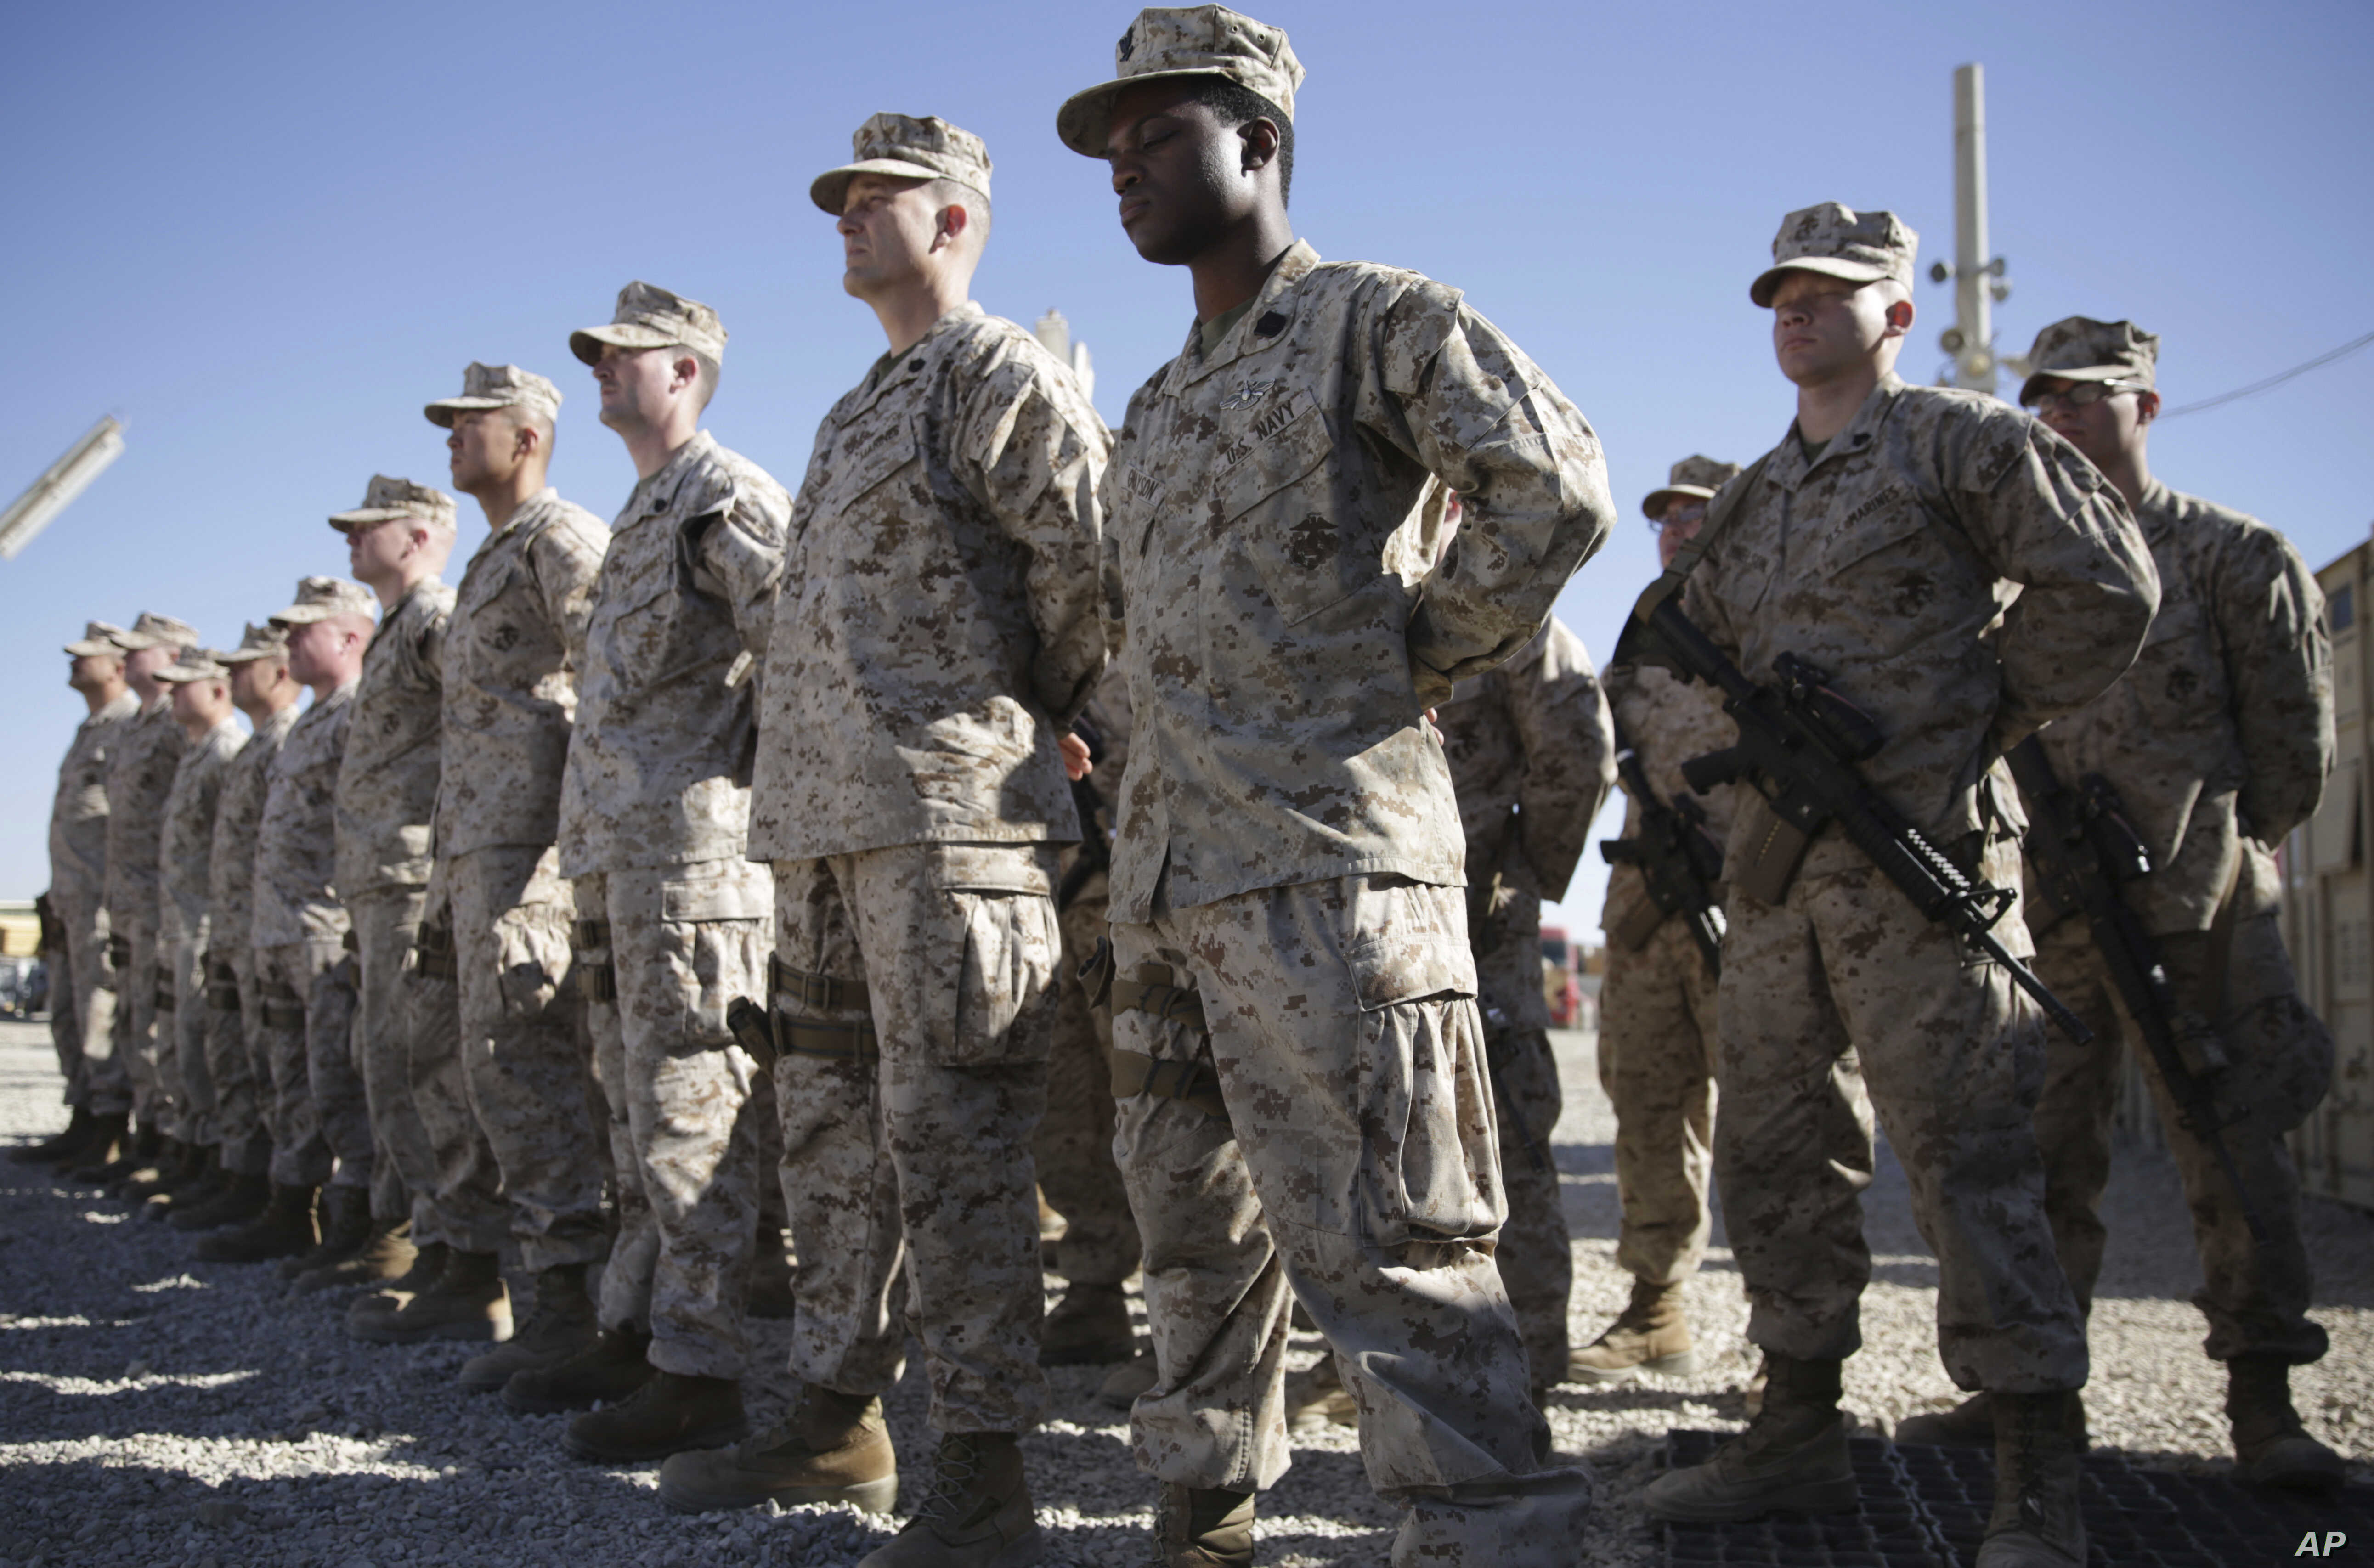 FILE - U.S. Marines stand guard during a change-of-command ceremony at Task Force Southwest military field in Shorab military camp of Helmand province, Afghanistan, Jan. 15, 2018.